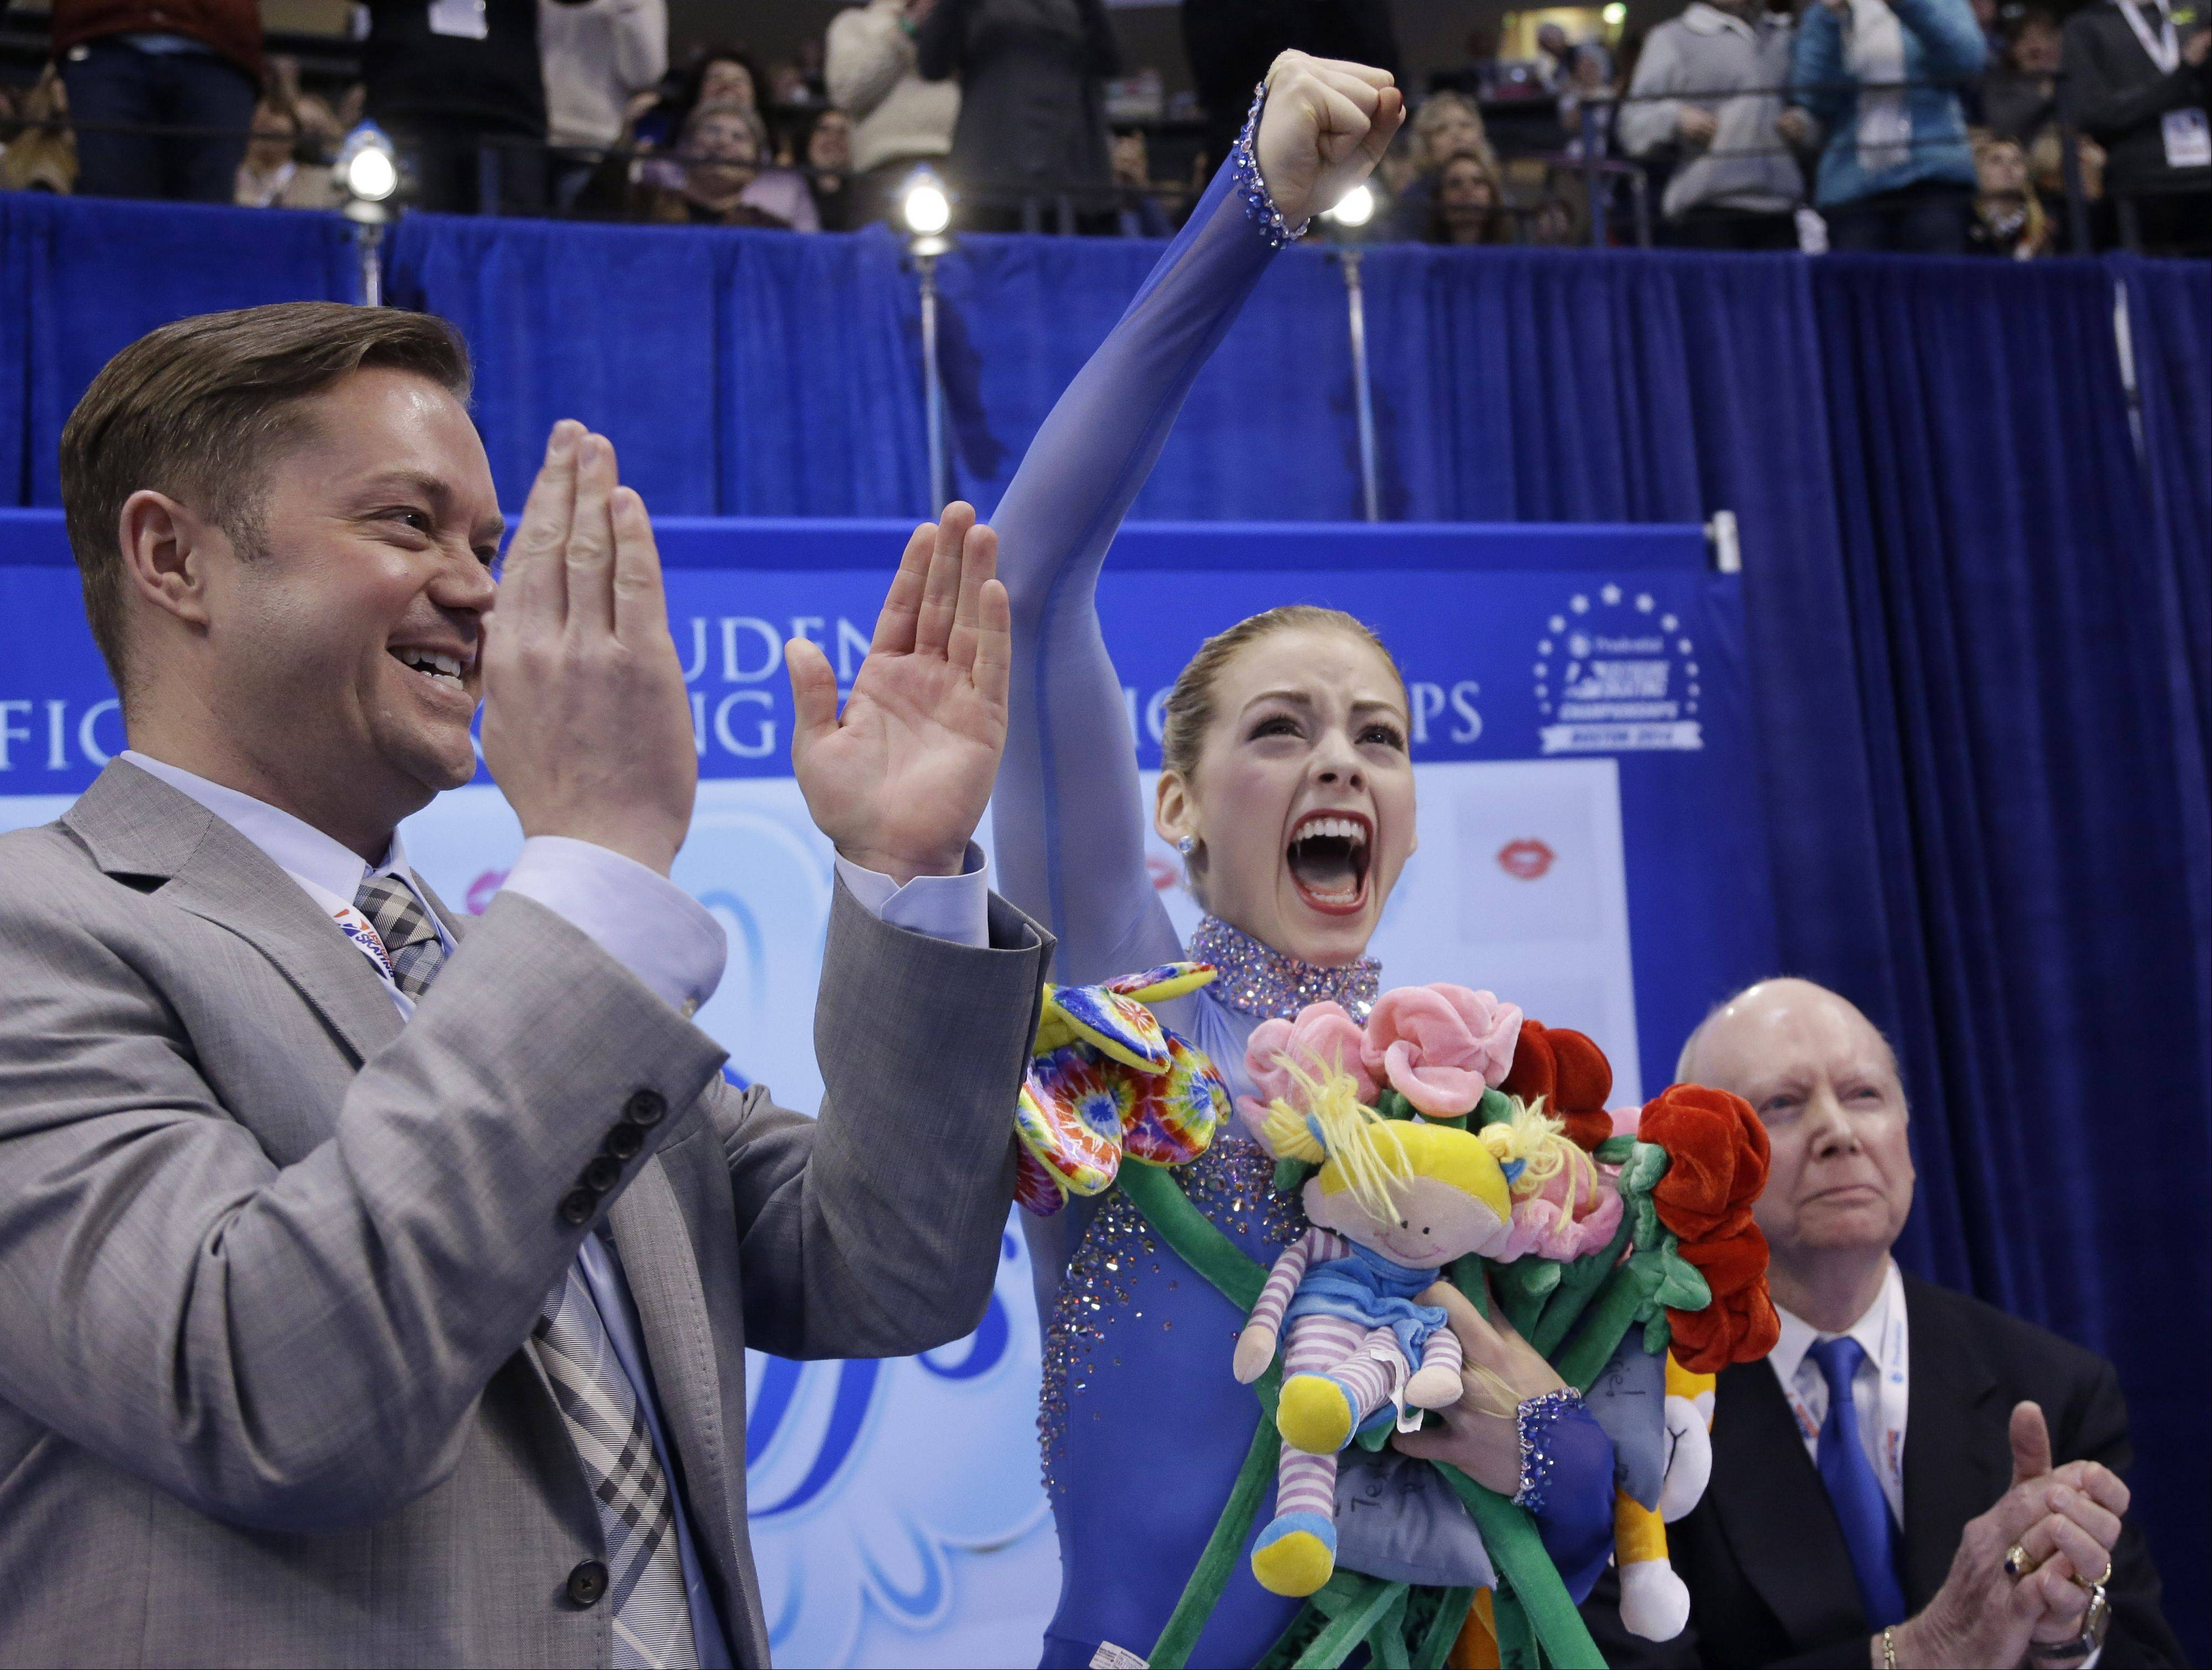 Gracie Gold, center, celebrates as she learns her scores for the women's free skate as her coaches Scott Brown, left, and Frank Carroll, right, applaud at the U.S. Figure Skating Championships Jan. 11 in Boston.